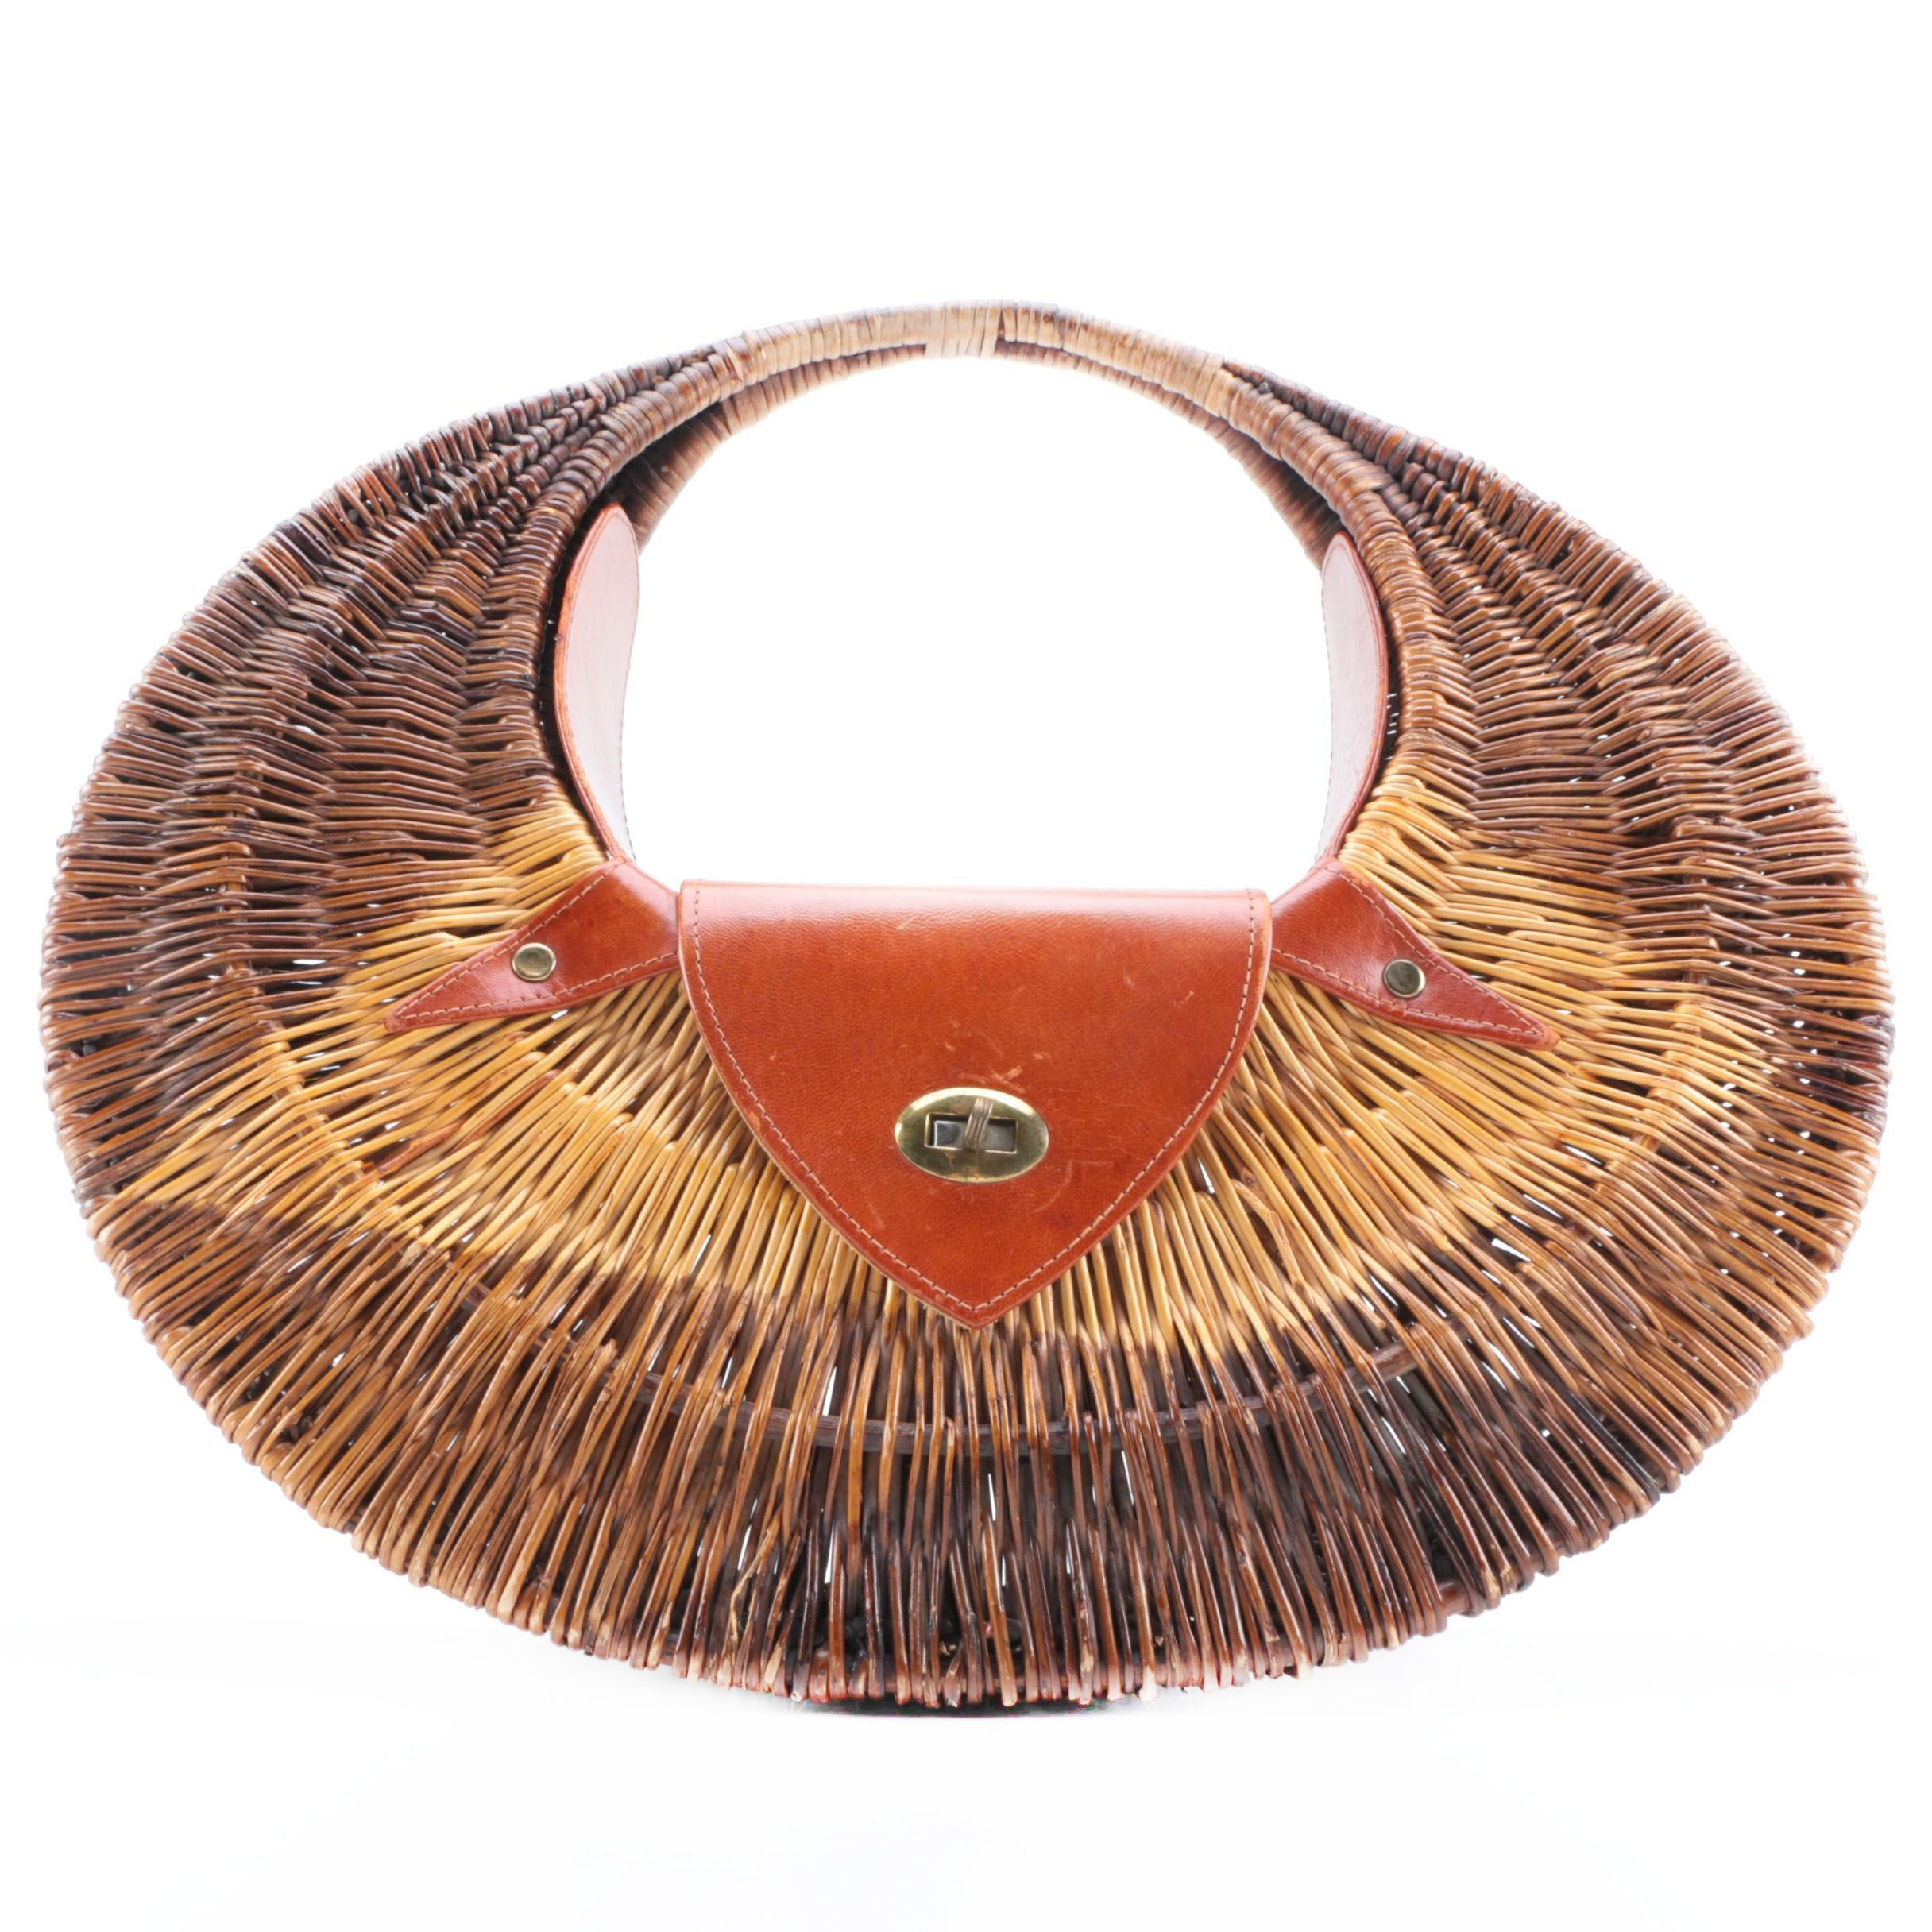 Vintage Woven Cane and Leather Basket Purse